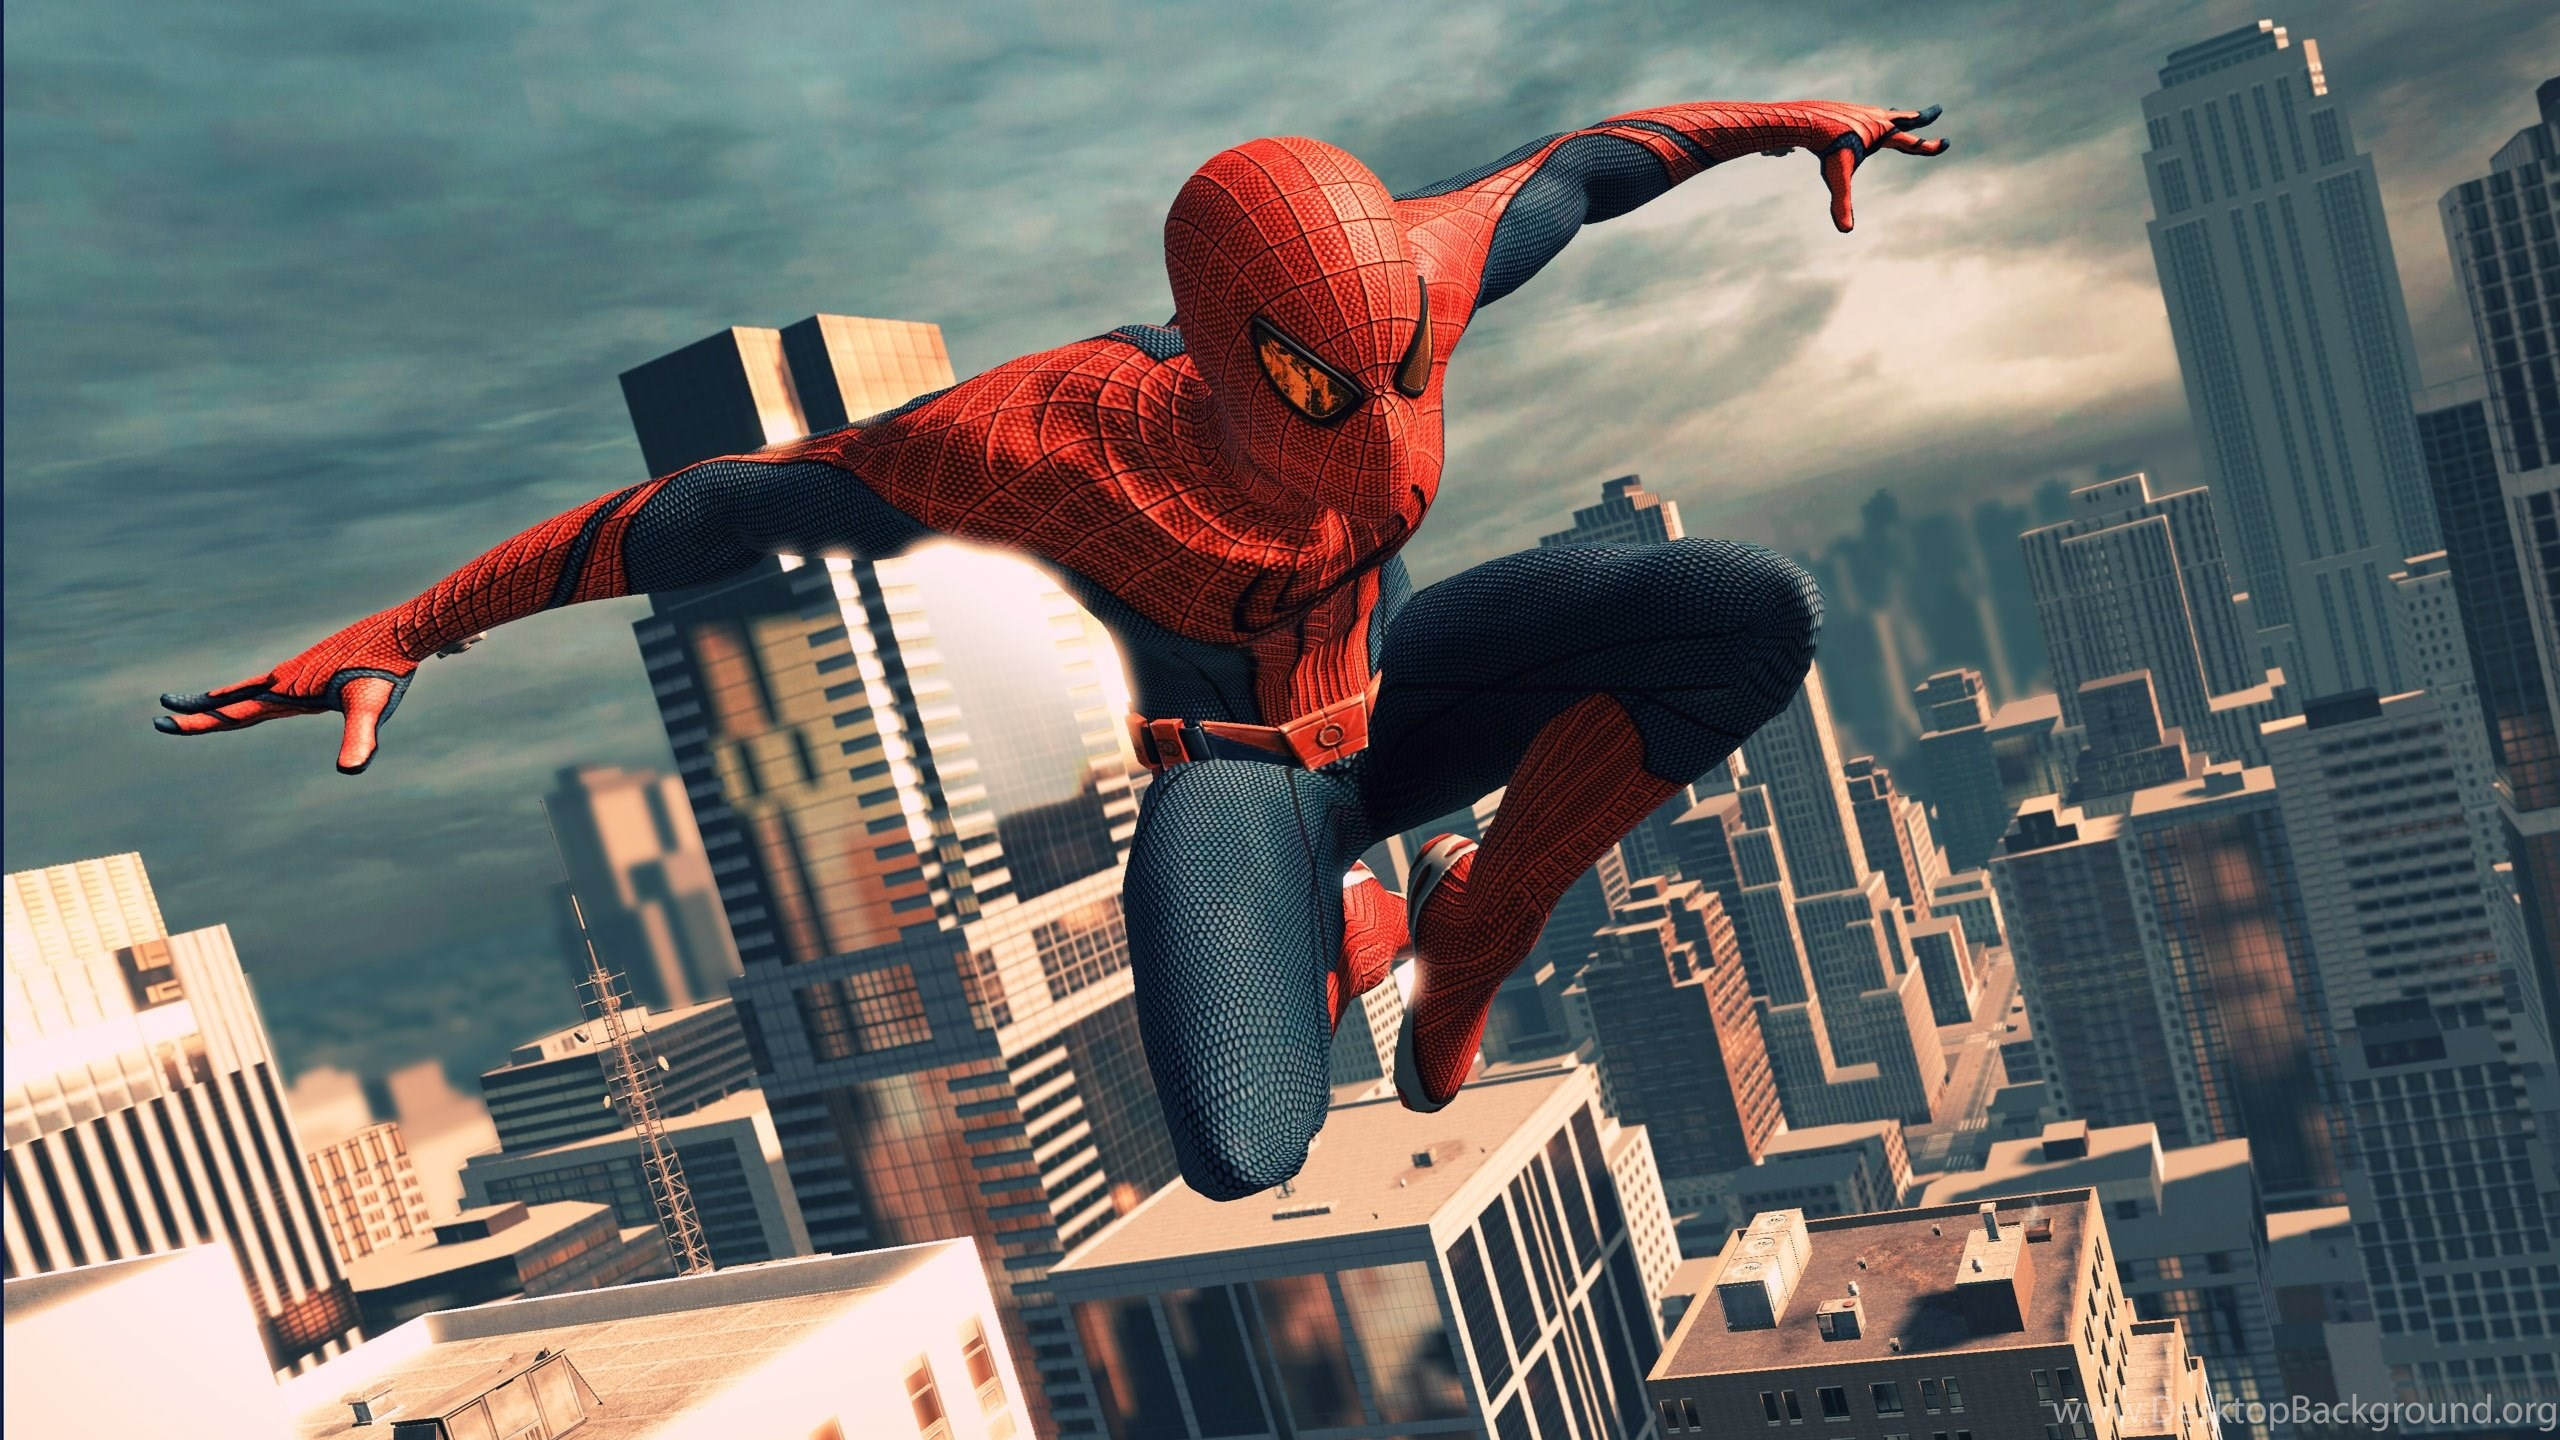 Wallpapers The Amazing Spiderman Superhero Spider Man Tohd With